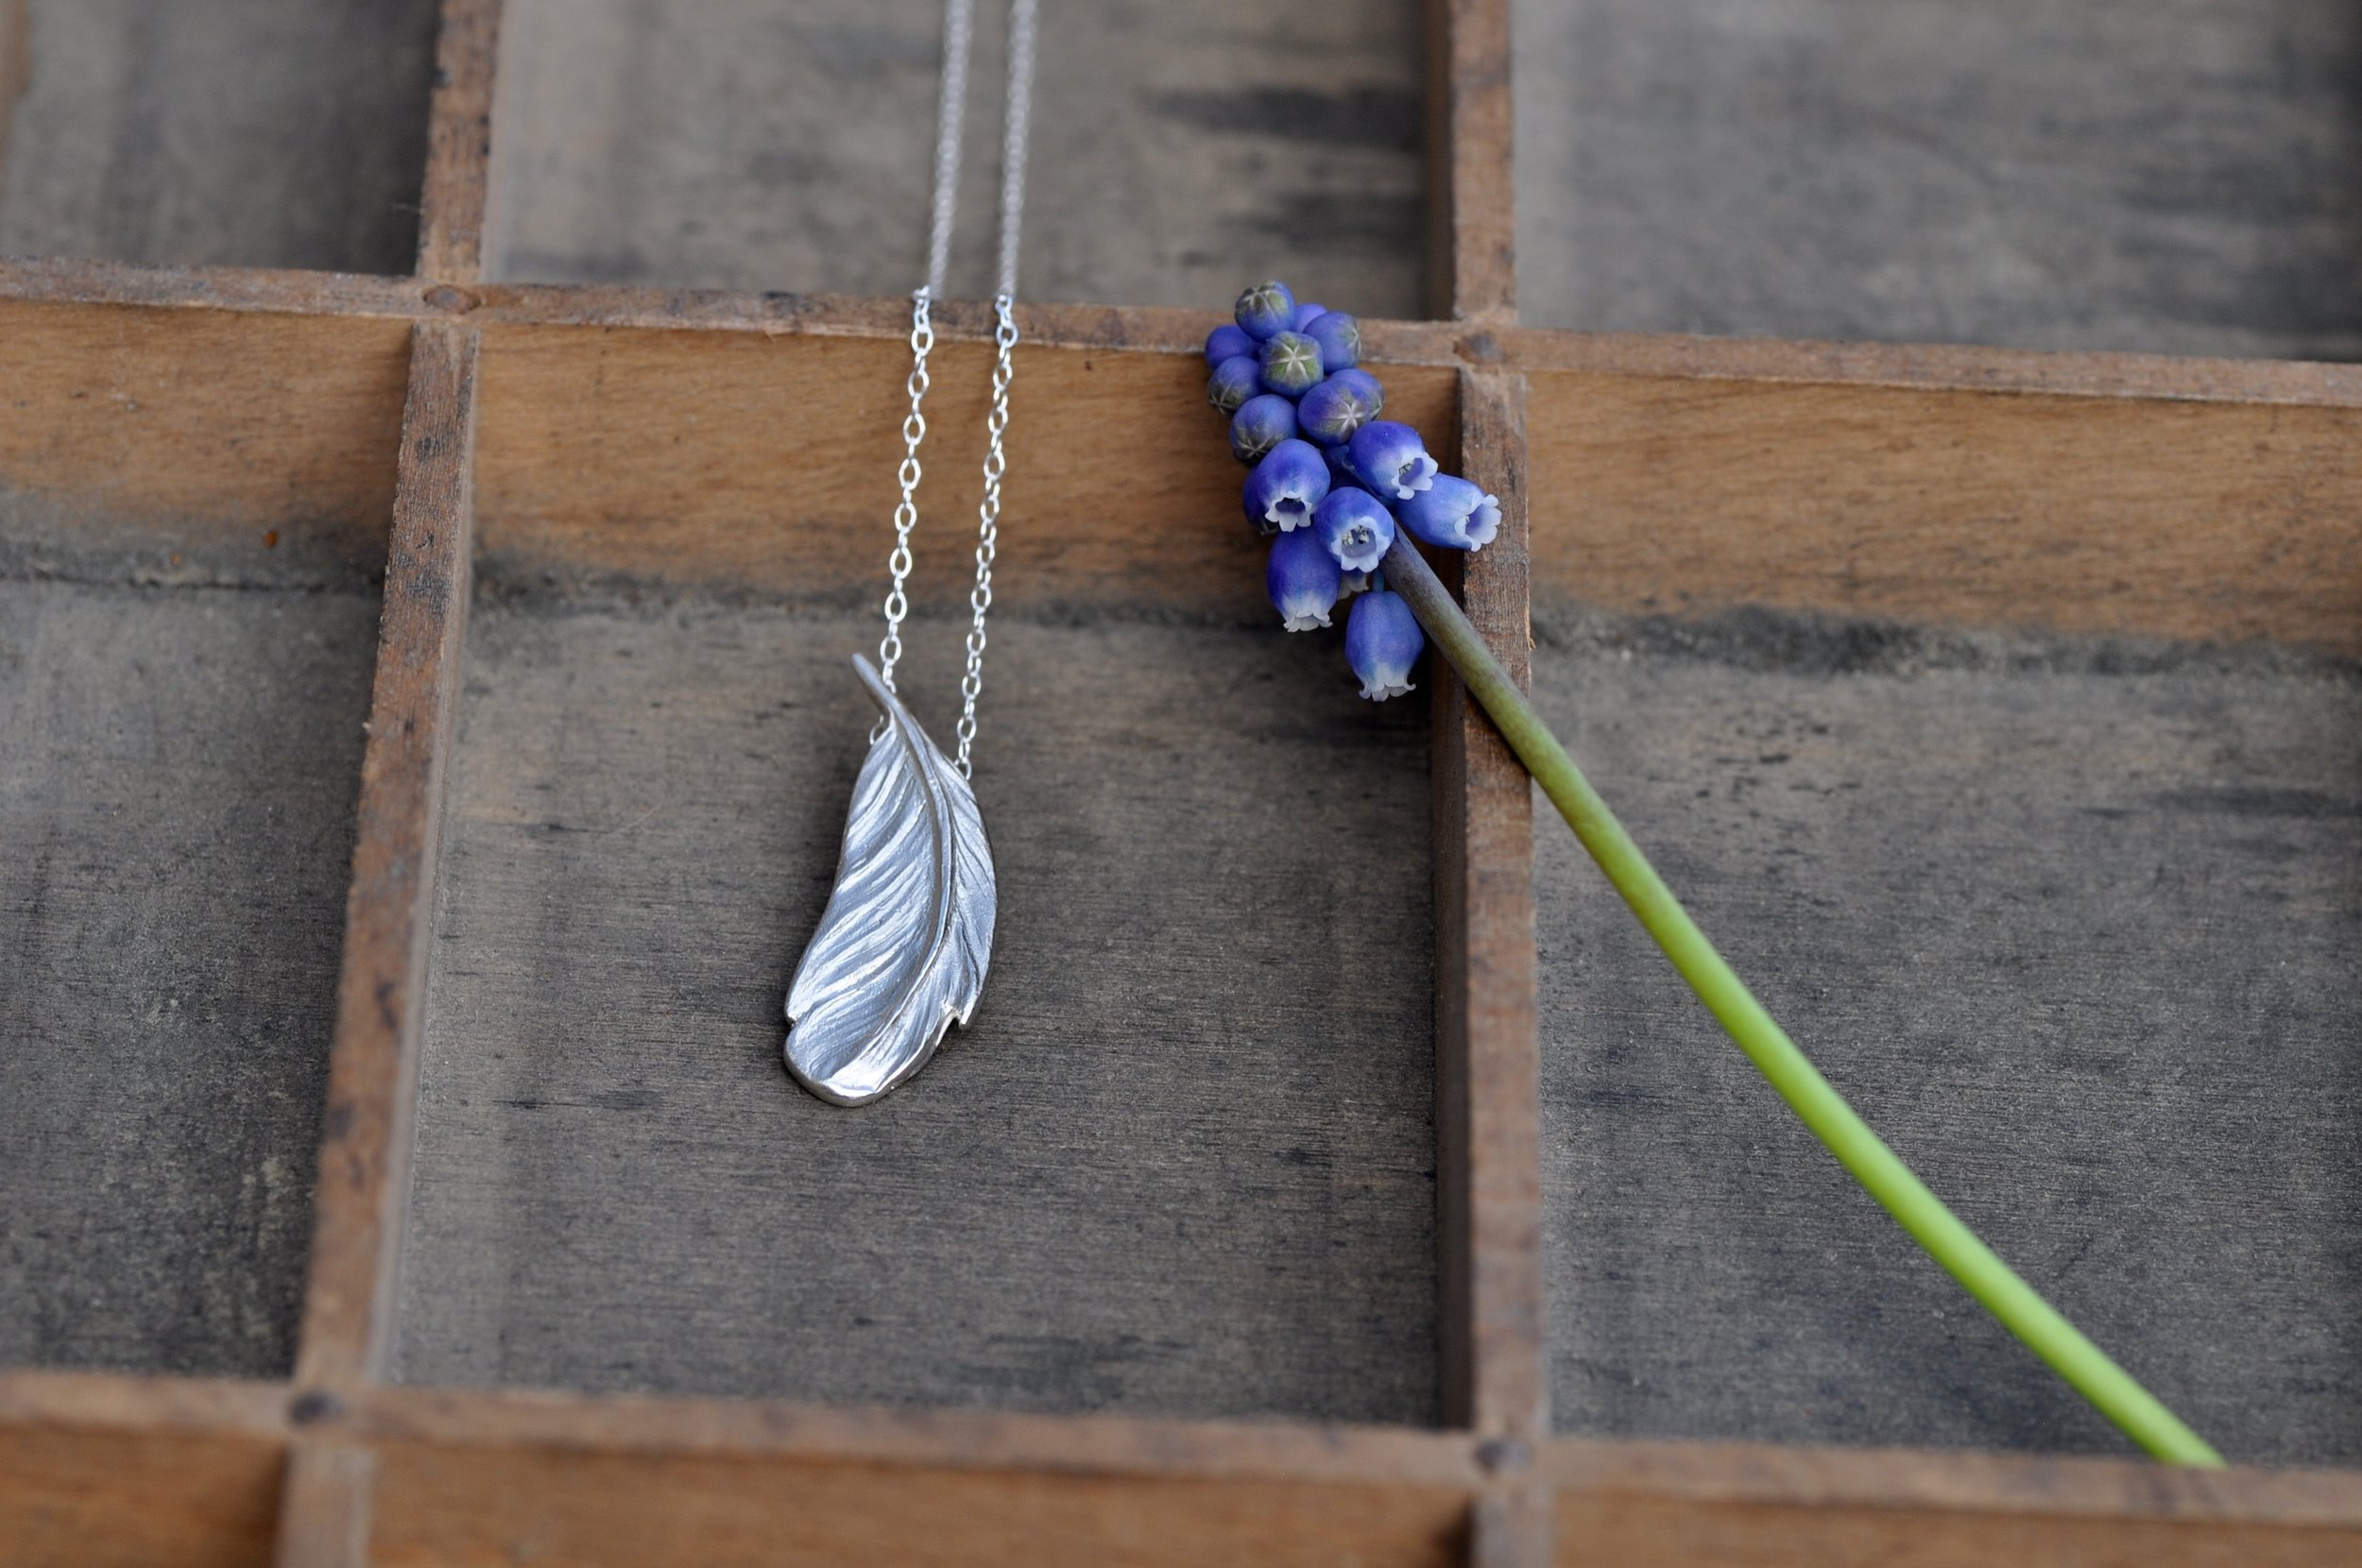 The detailed textures on Denya's feather pendant are exquisite.